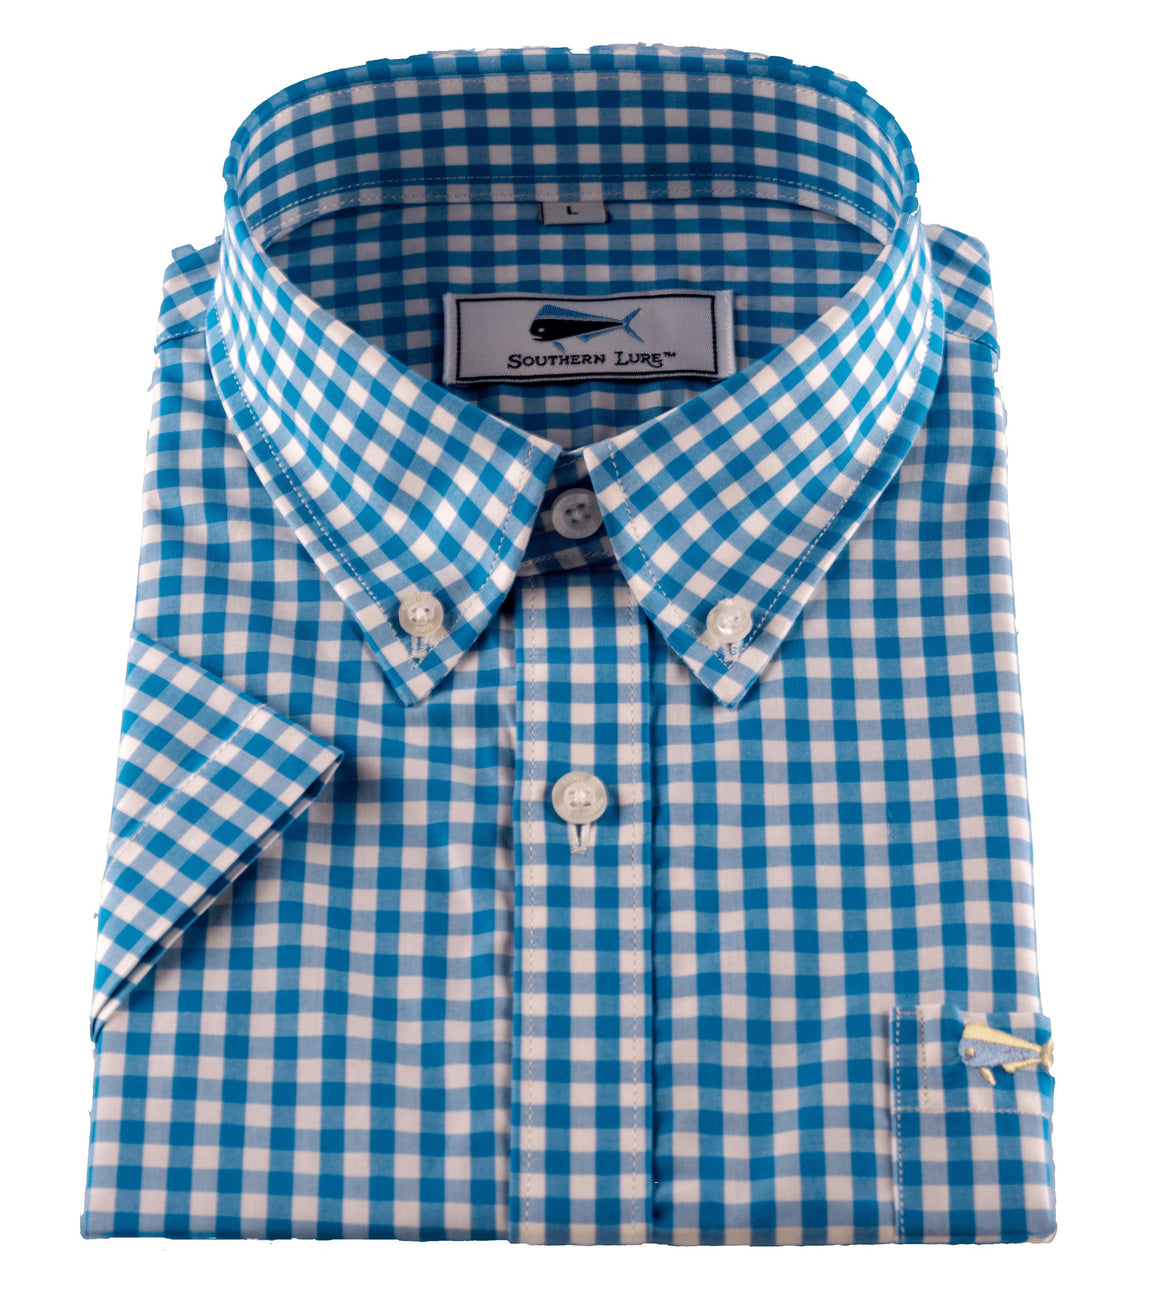 Youth & Toddler Short Sleeve Woven Sport Shirt - Turquoise Gingham